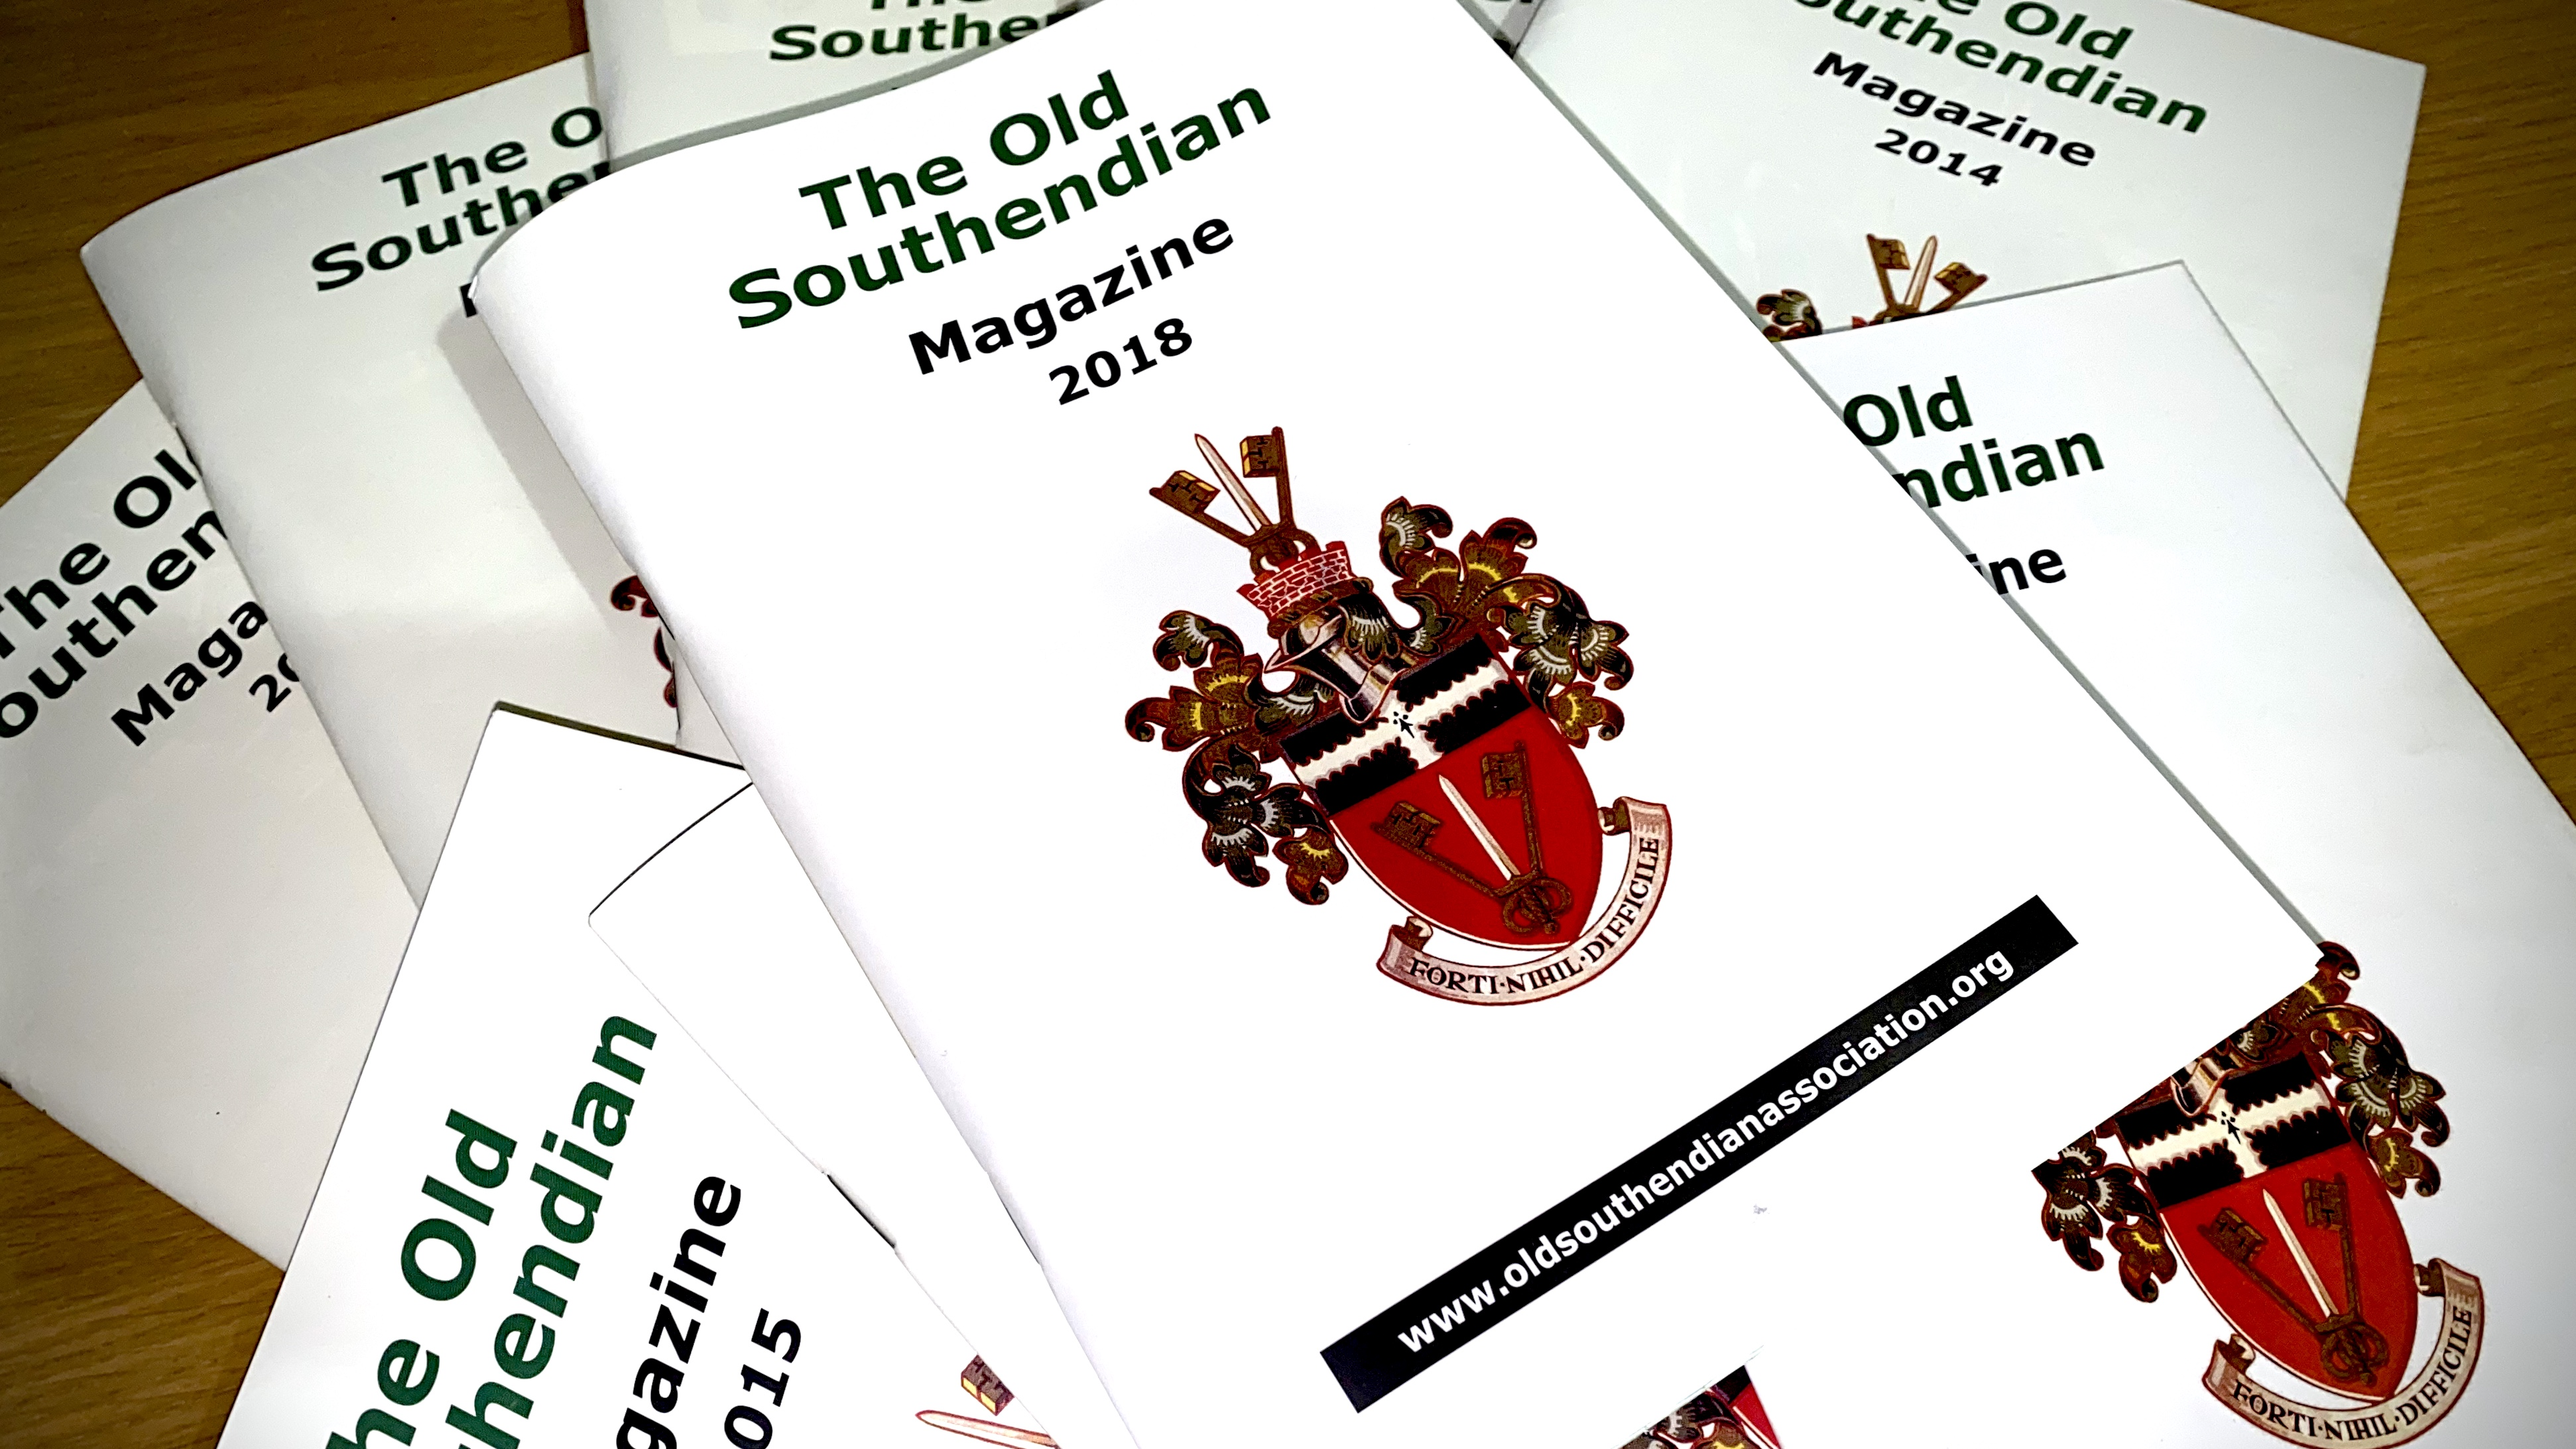 The Old Southendian Magazine